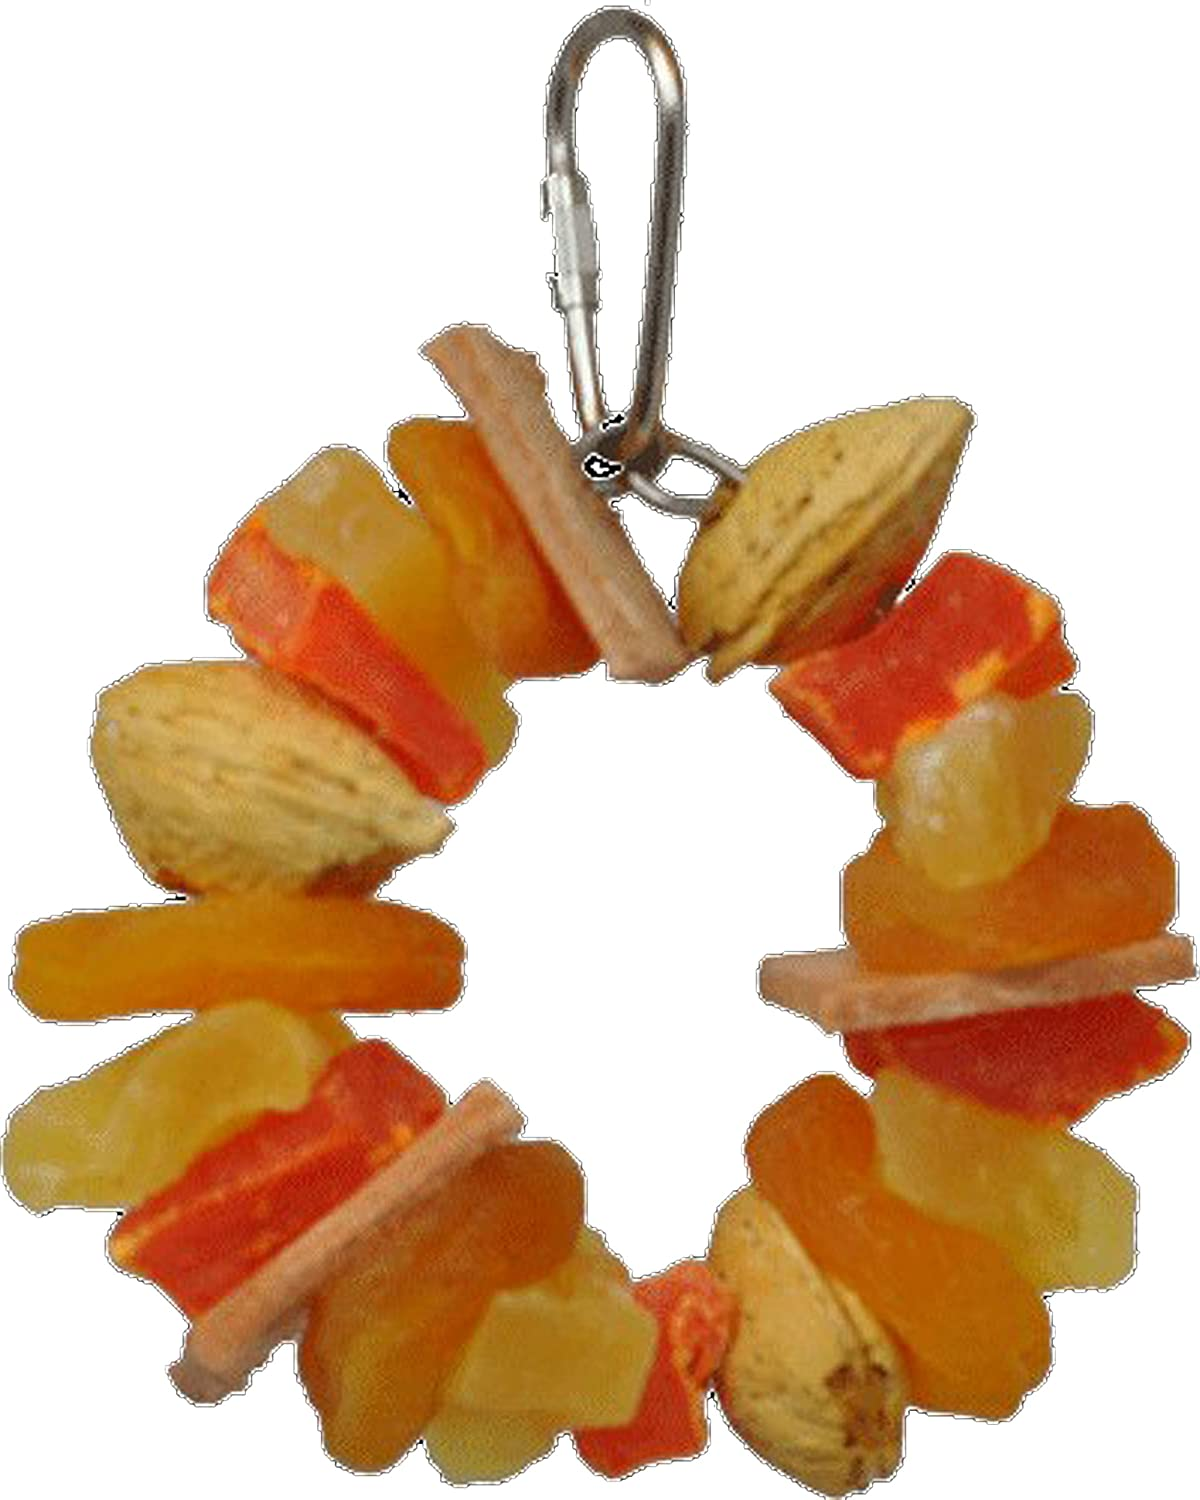 A&E Cage Company Fruit Ring Jr. Dried Fruit